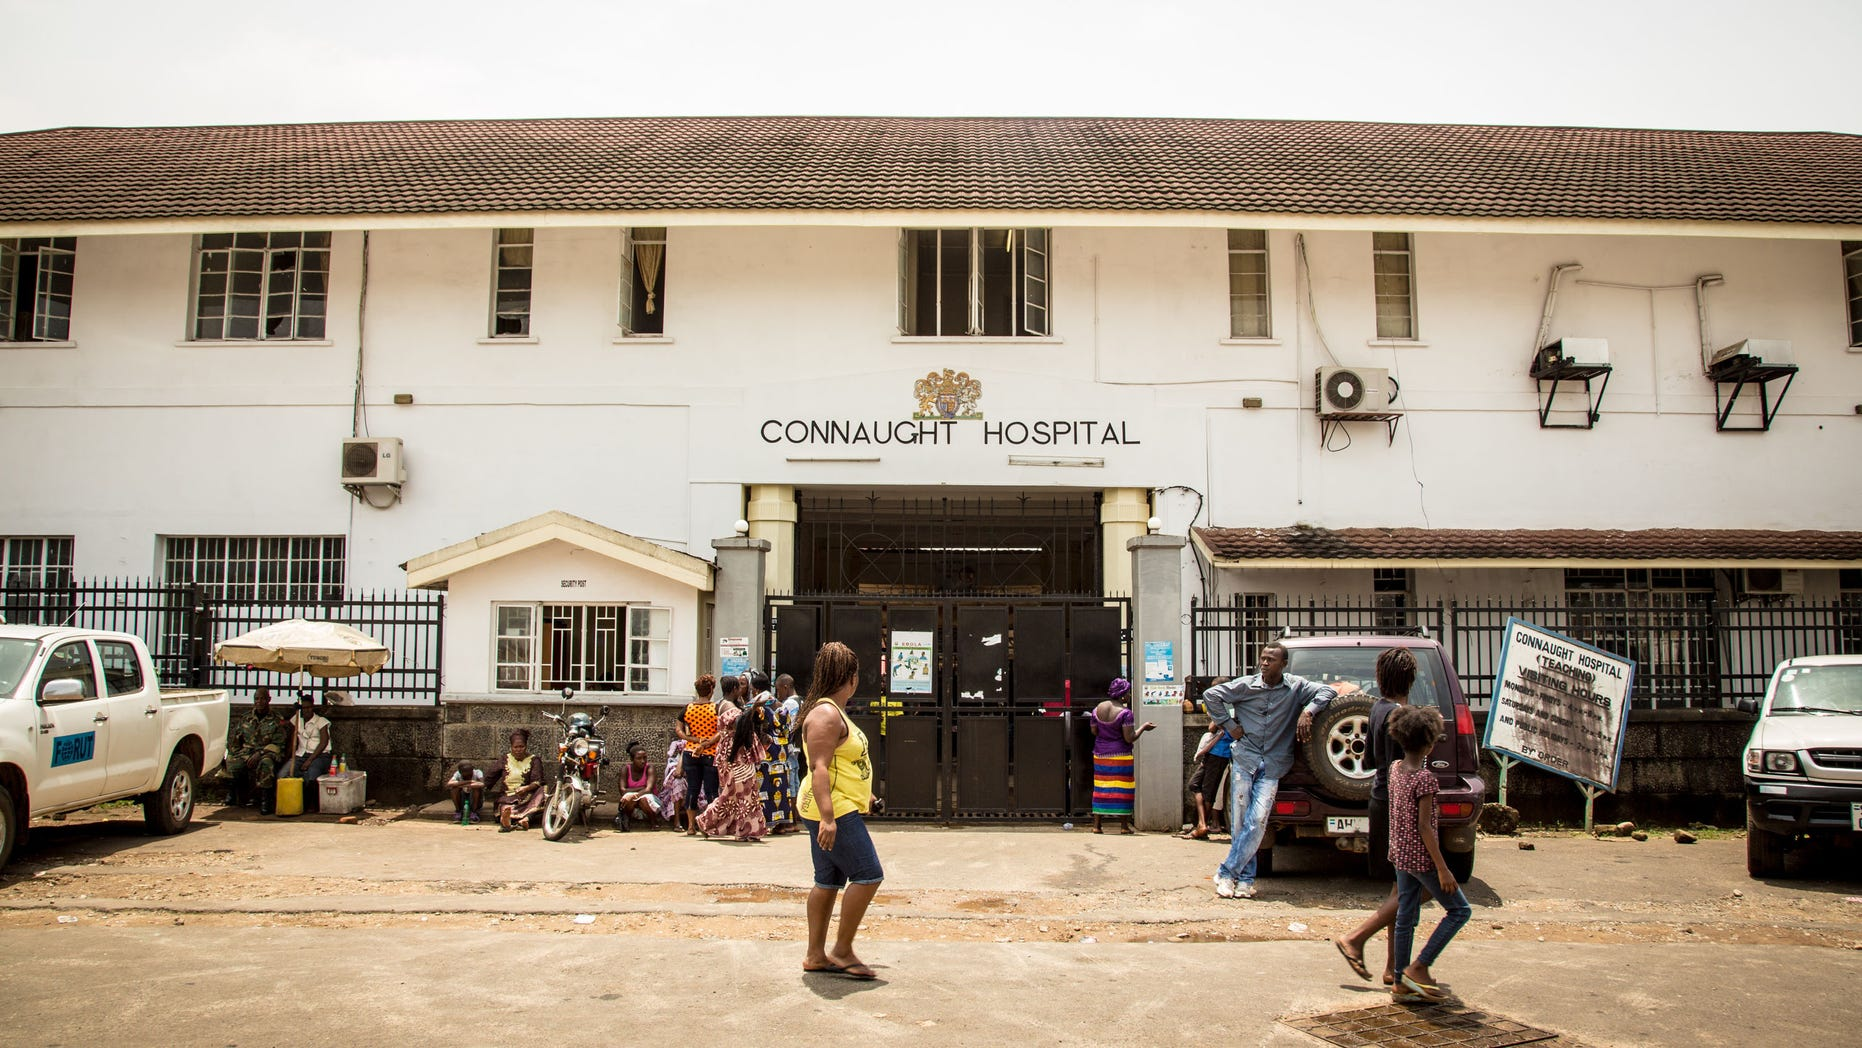 In this photo taken on Sunday,  Sept. 14, 2014,  people walk past the Connaught Hospital that is used for treating people suffering from the Ebola virus in Freetown, Sierra Leone.  (AP Photo/ Michael Duff)